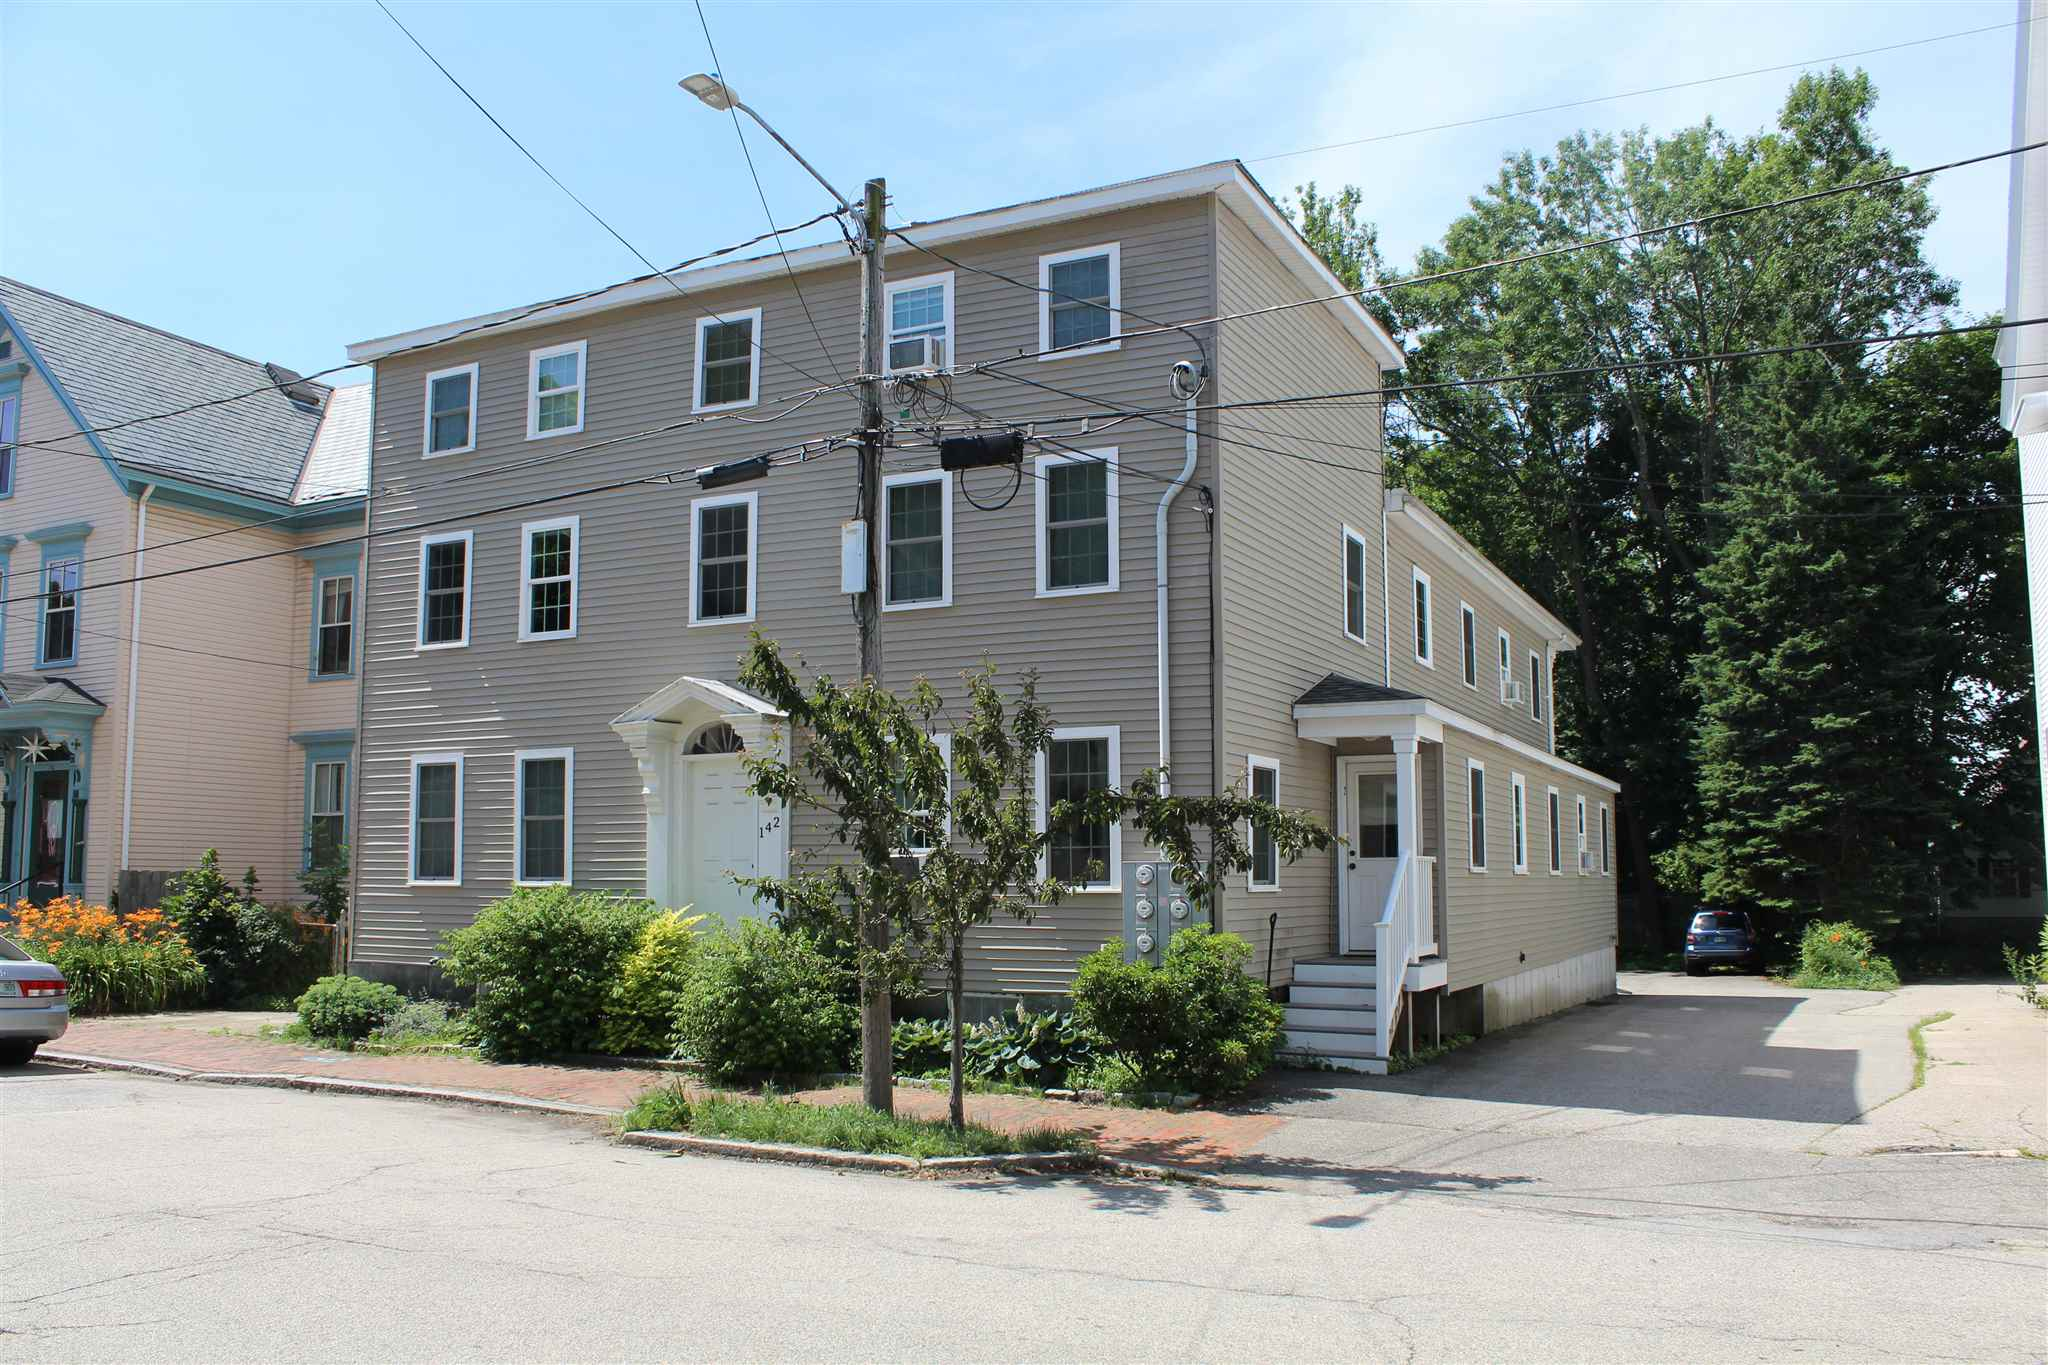 142 Cabot Street 3, Portsmouth, NH 03801